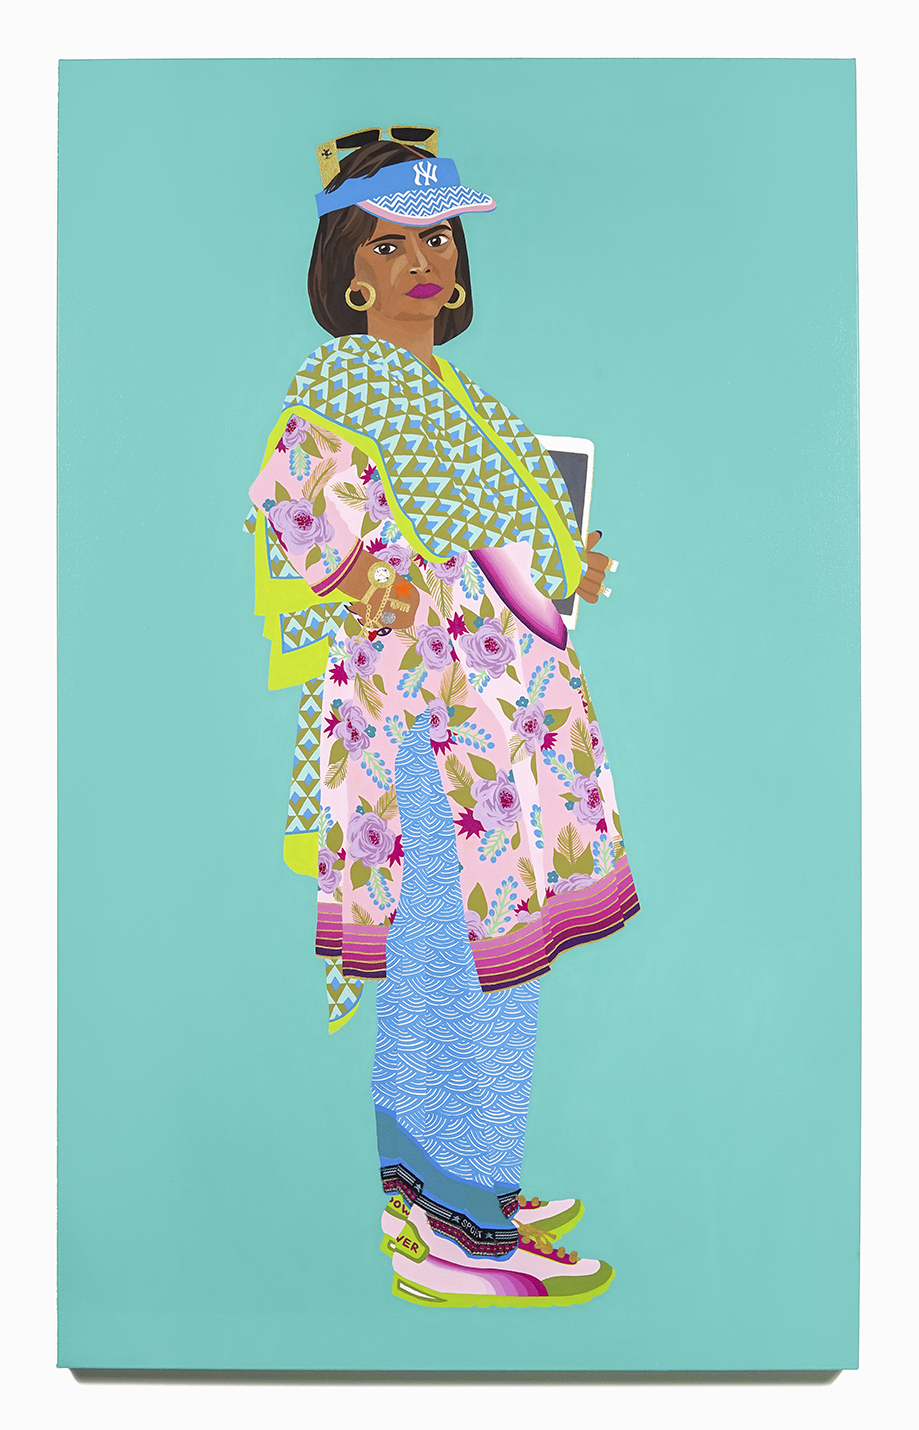 2016. Pinky Aunty   (   Upping the Aunty  series)   Acrylic, fabric and crystal on canvas   36 in. x 60 in.    Pinky Aunty kicks ass with powder pink Bata Power sneakers paired with Hiroshige-inspired Japanese sport-styled patiala salwar. She tops this with a rose garden floral kameez and contemporary-chic diamond-patterned chuni. Large rocks on her fingers, branded Versace-look sunglasses perched above her NY Yankees visor round off her urban flair.    Private Collection